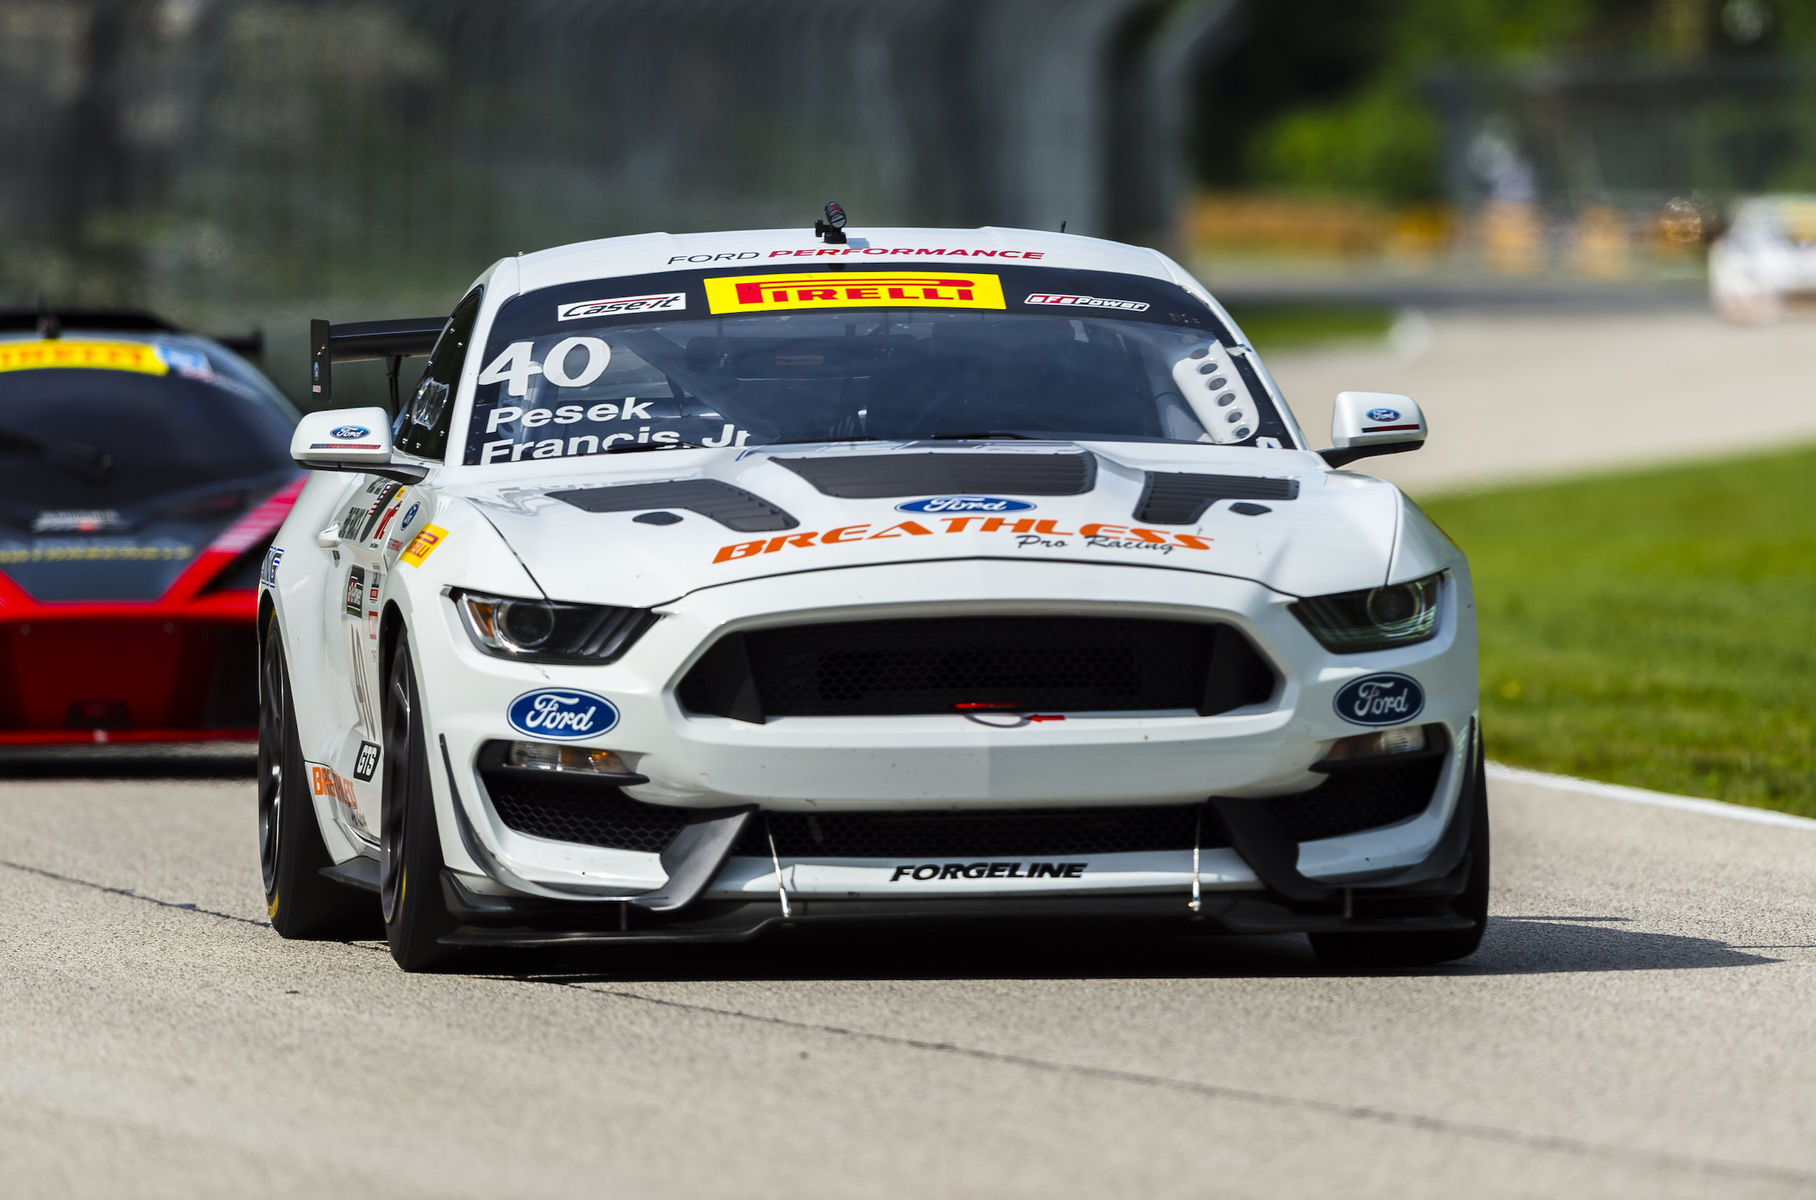 2017 Ford Mustang | Forgeline Teams Dominate Front Row at Pirelli World Challenge Road America